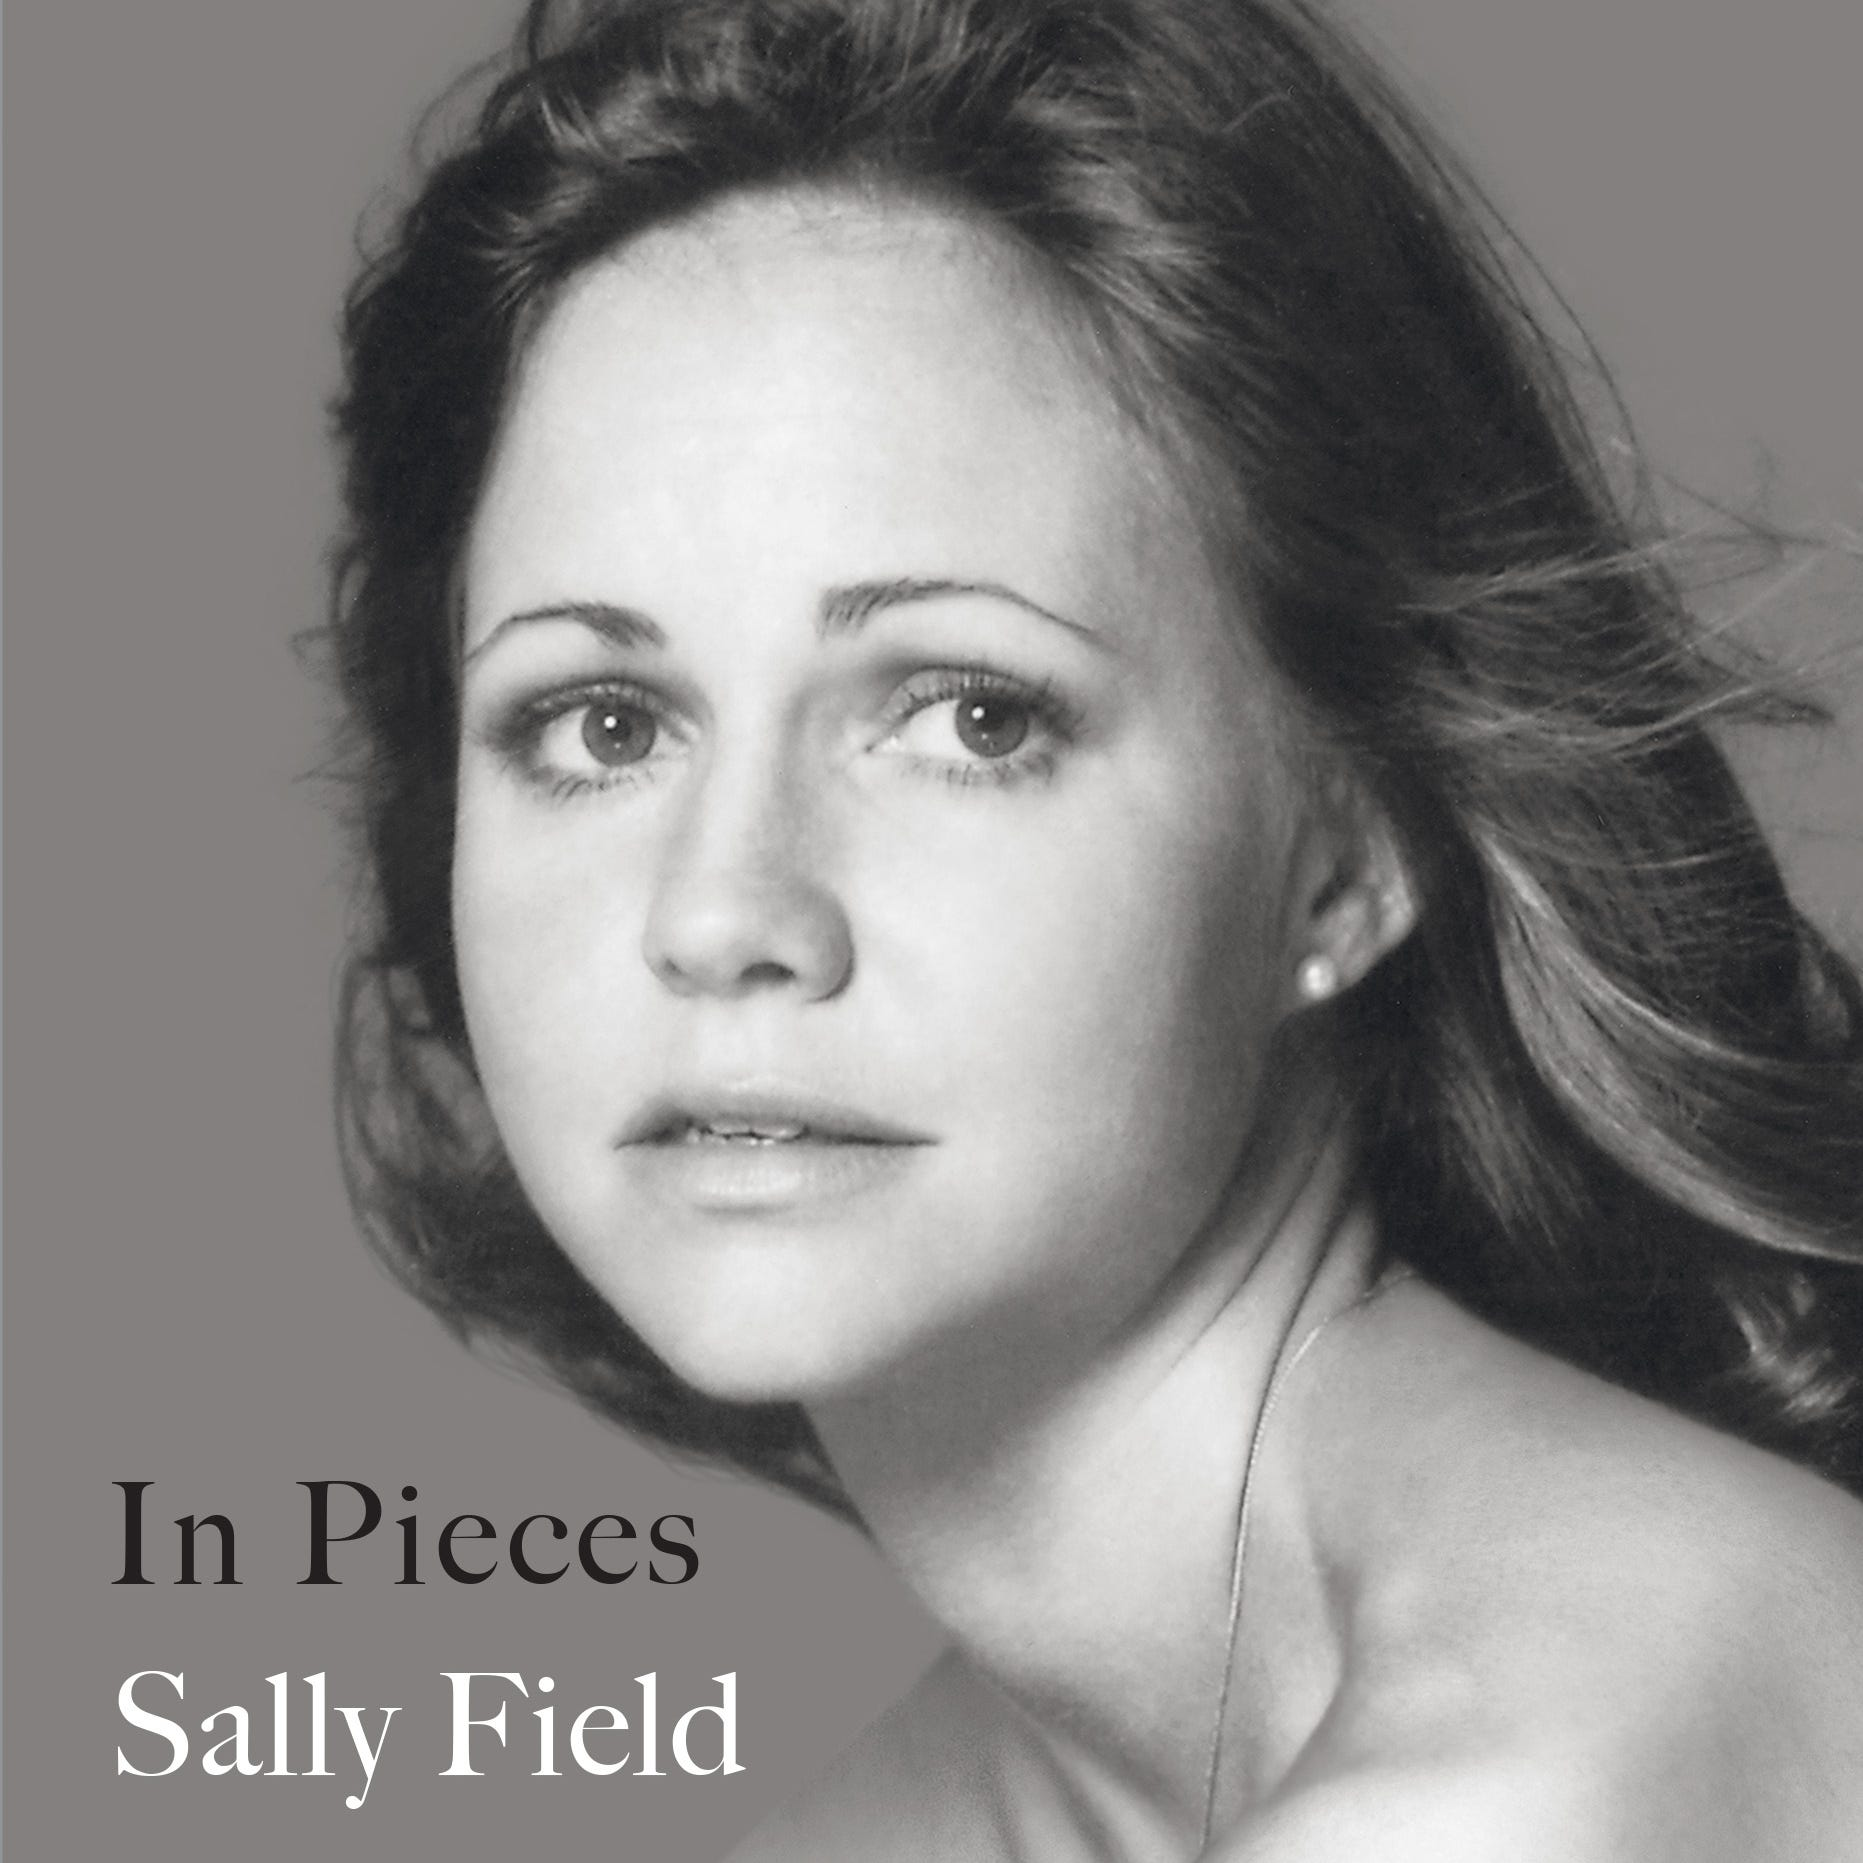 Sally Field on stepfather's abuse: 'I couldn't expect protection to come from my mother'